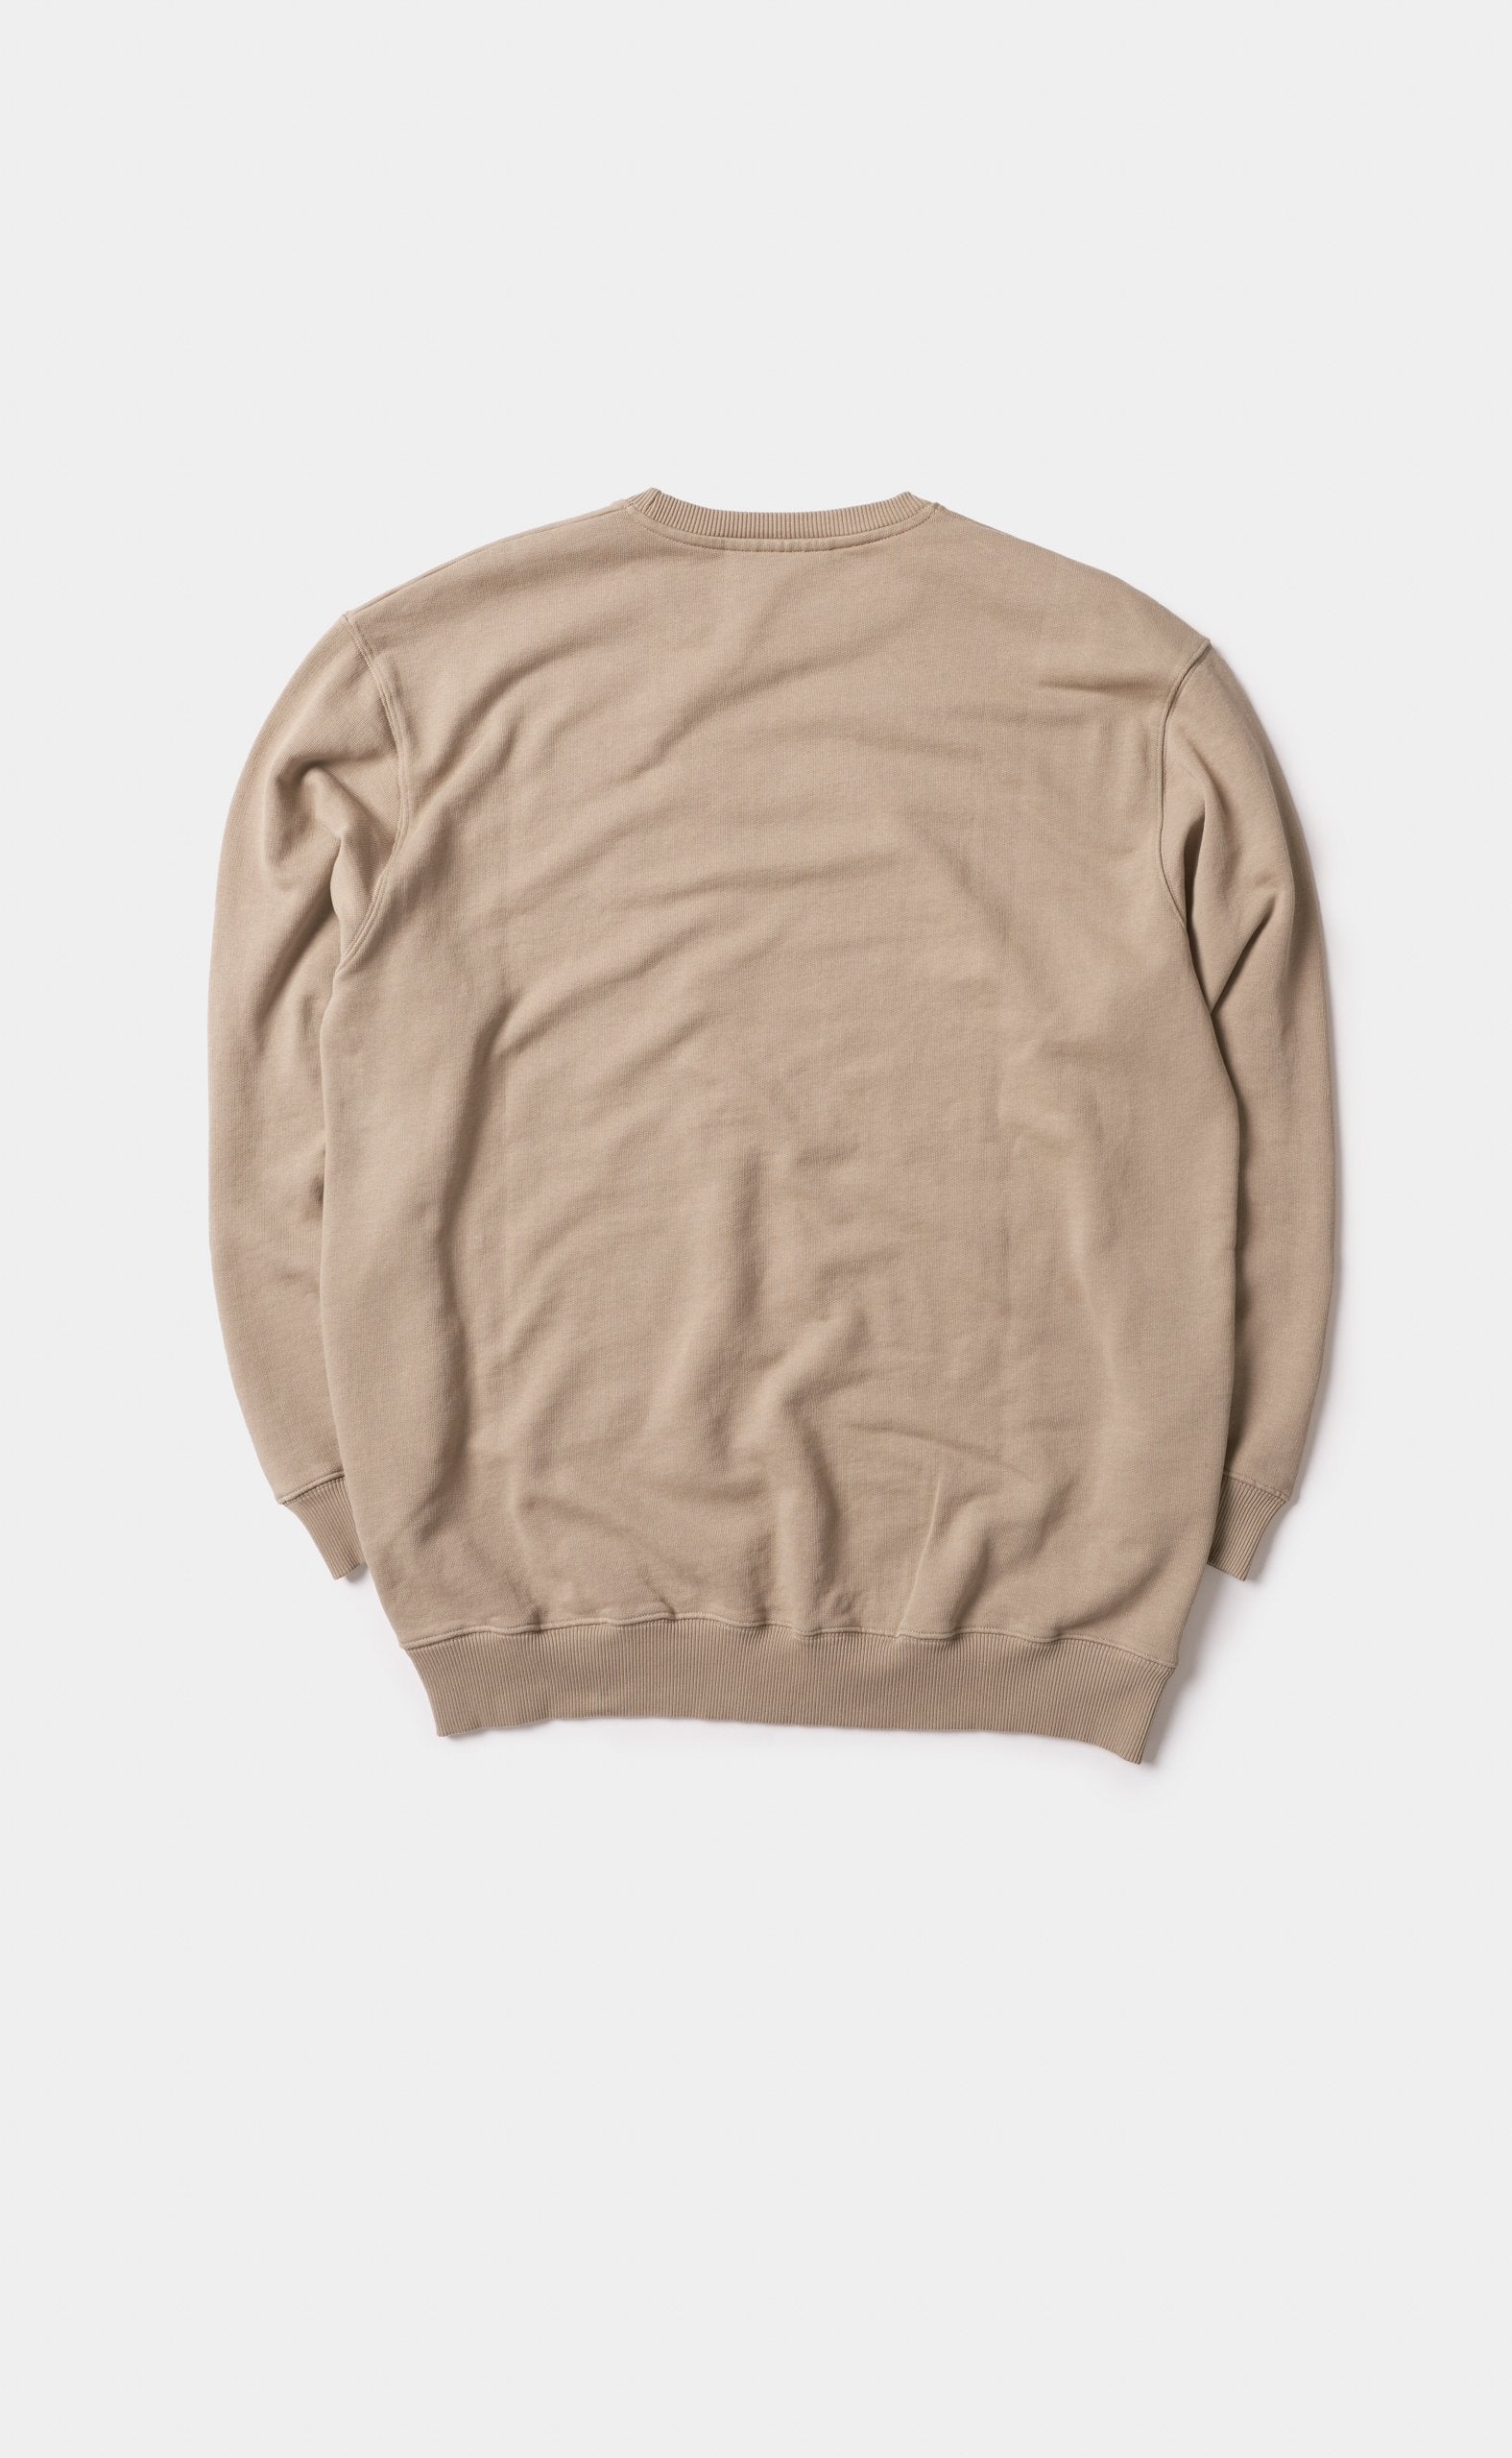 Graphic Sweater Taupe - Circle Patch